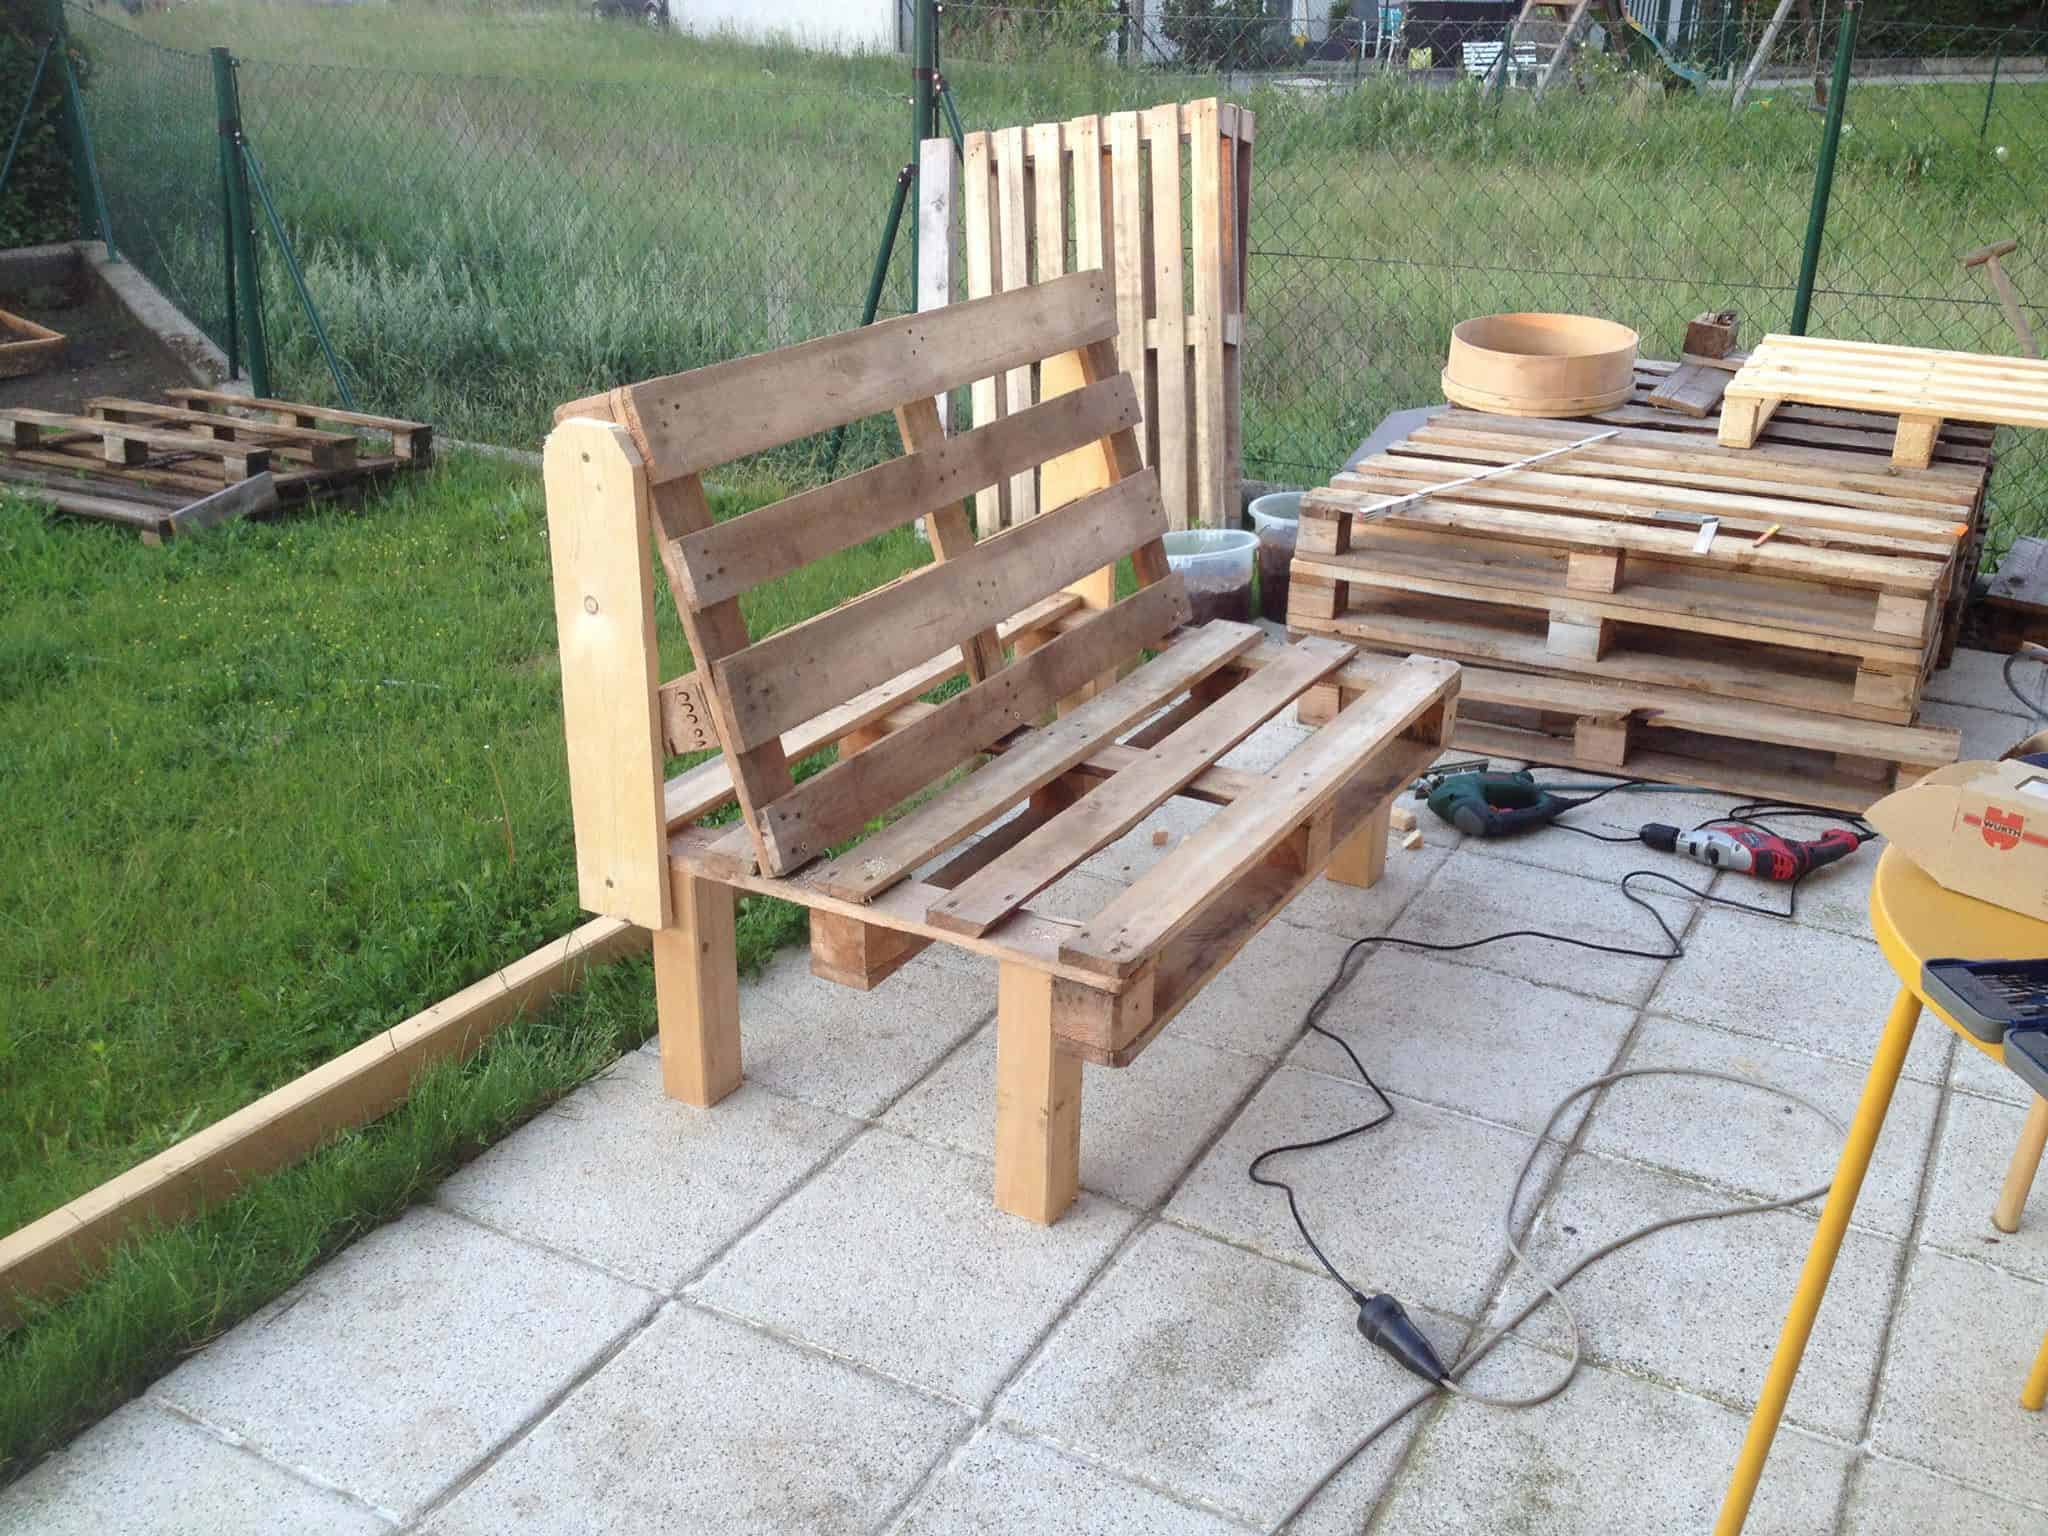 2 Person Comfy Pallet Garden Seat. Pallet Benches  Pallet Chairs   Patio furniture   Pallet Ideas